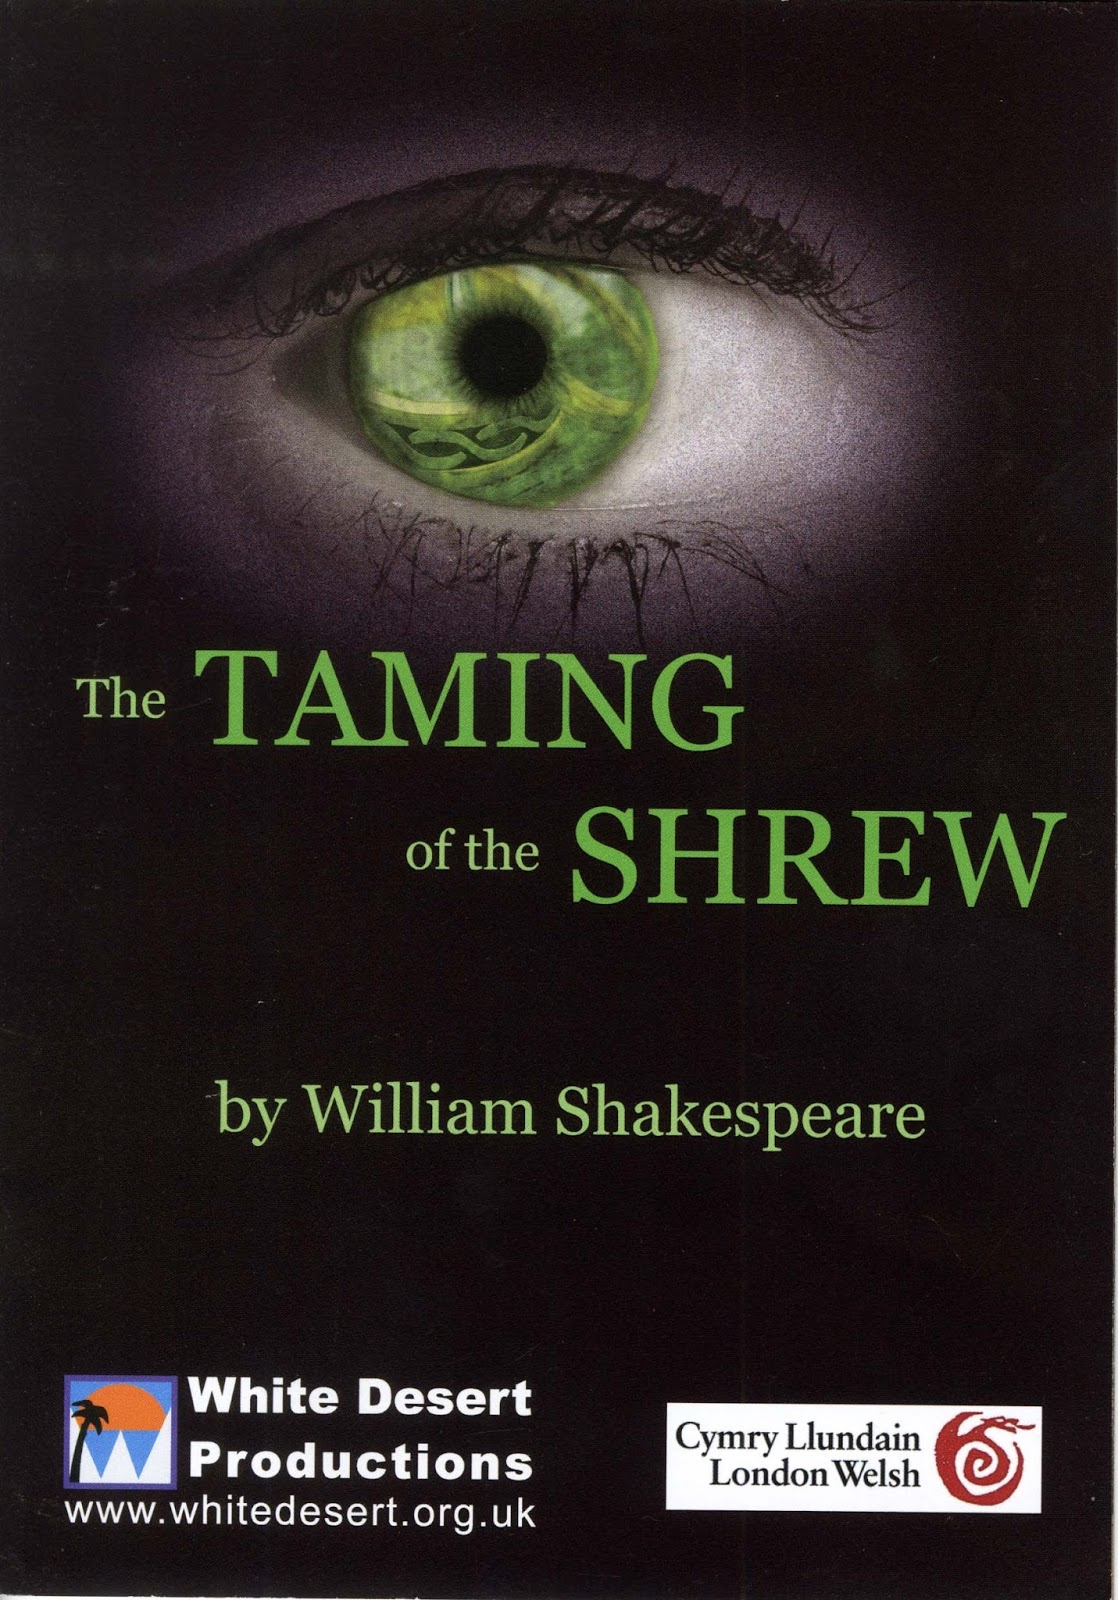 taming of the shrew modern audience The taming of the shrew by william shakespeare as translated and updated by orson scott card introduction where the changes in vocabulary most hurt the ability of the plays to work well with a modern audience is in the humor.